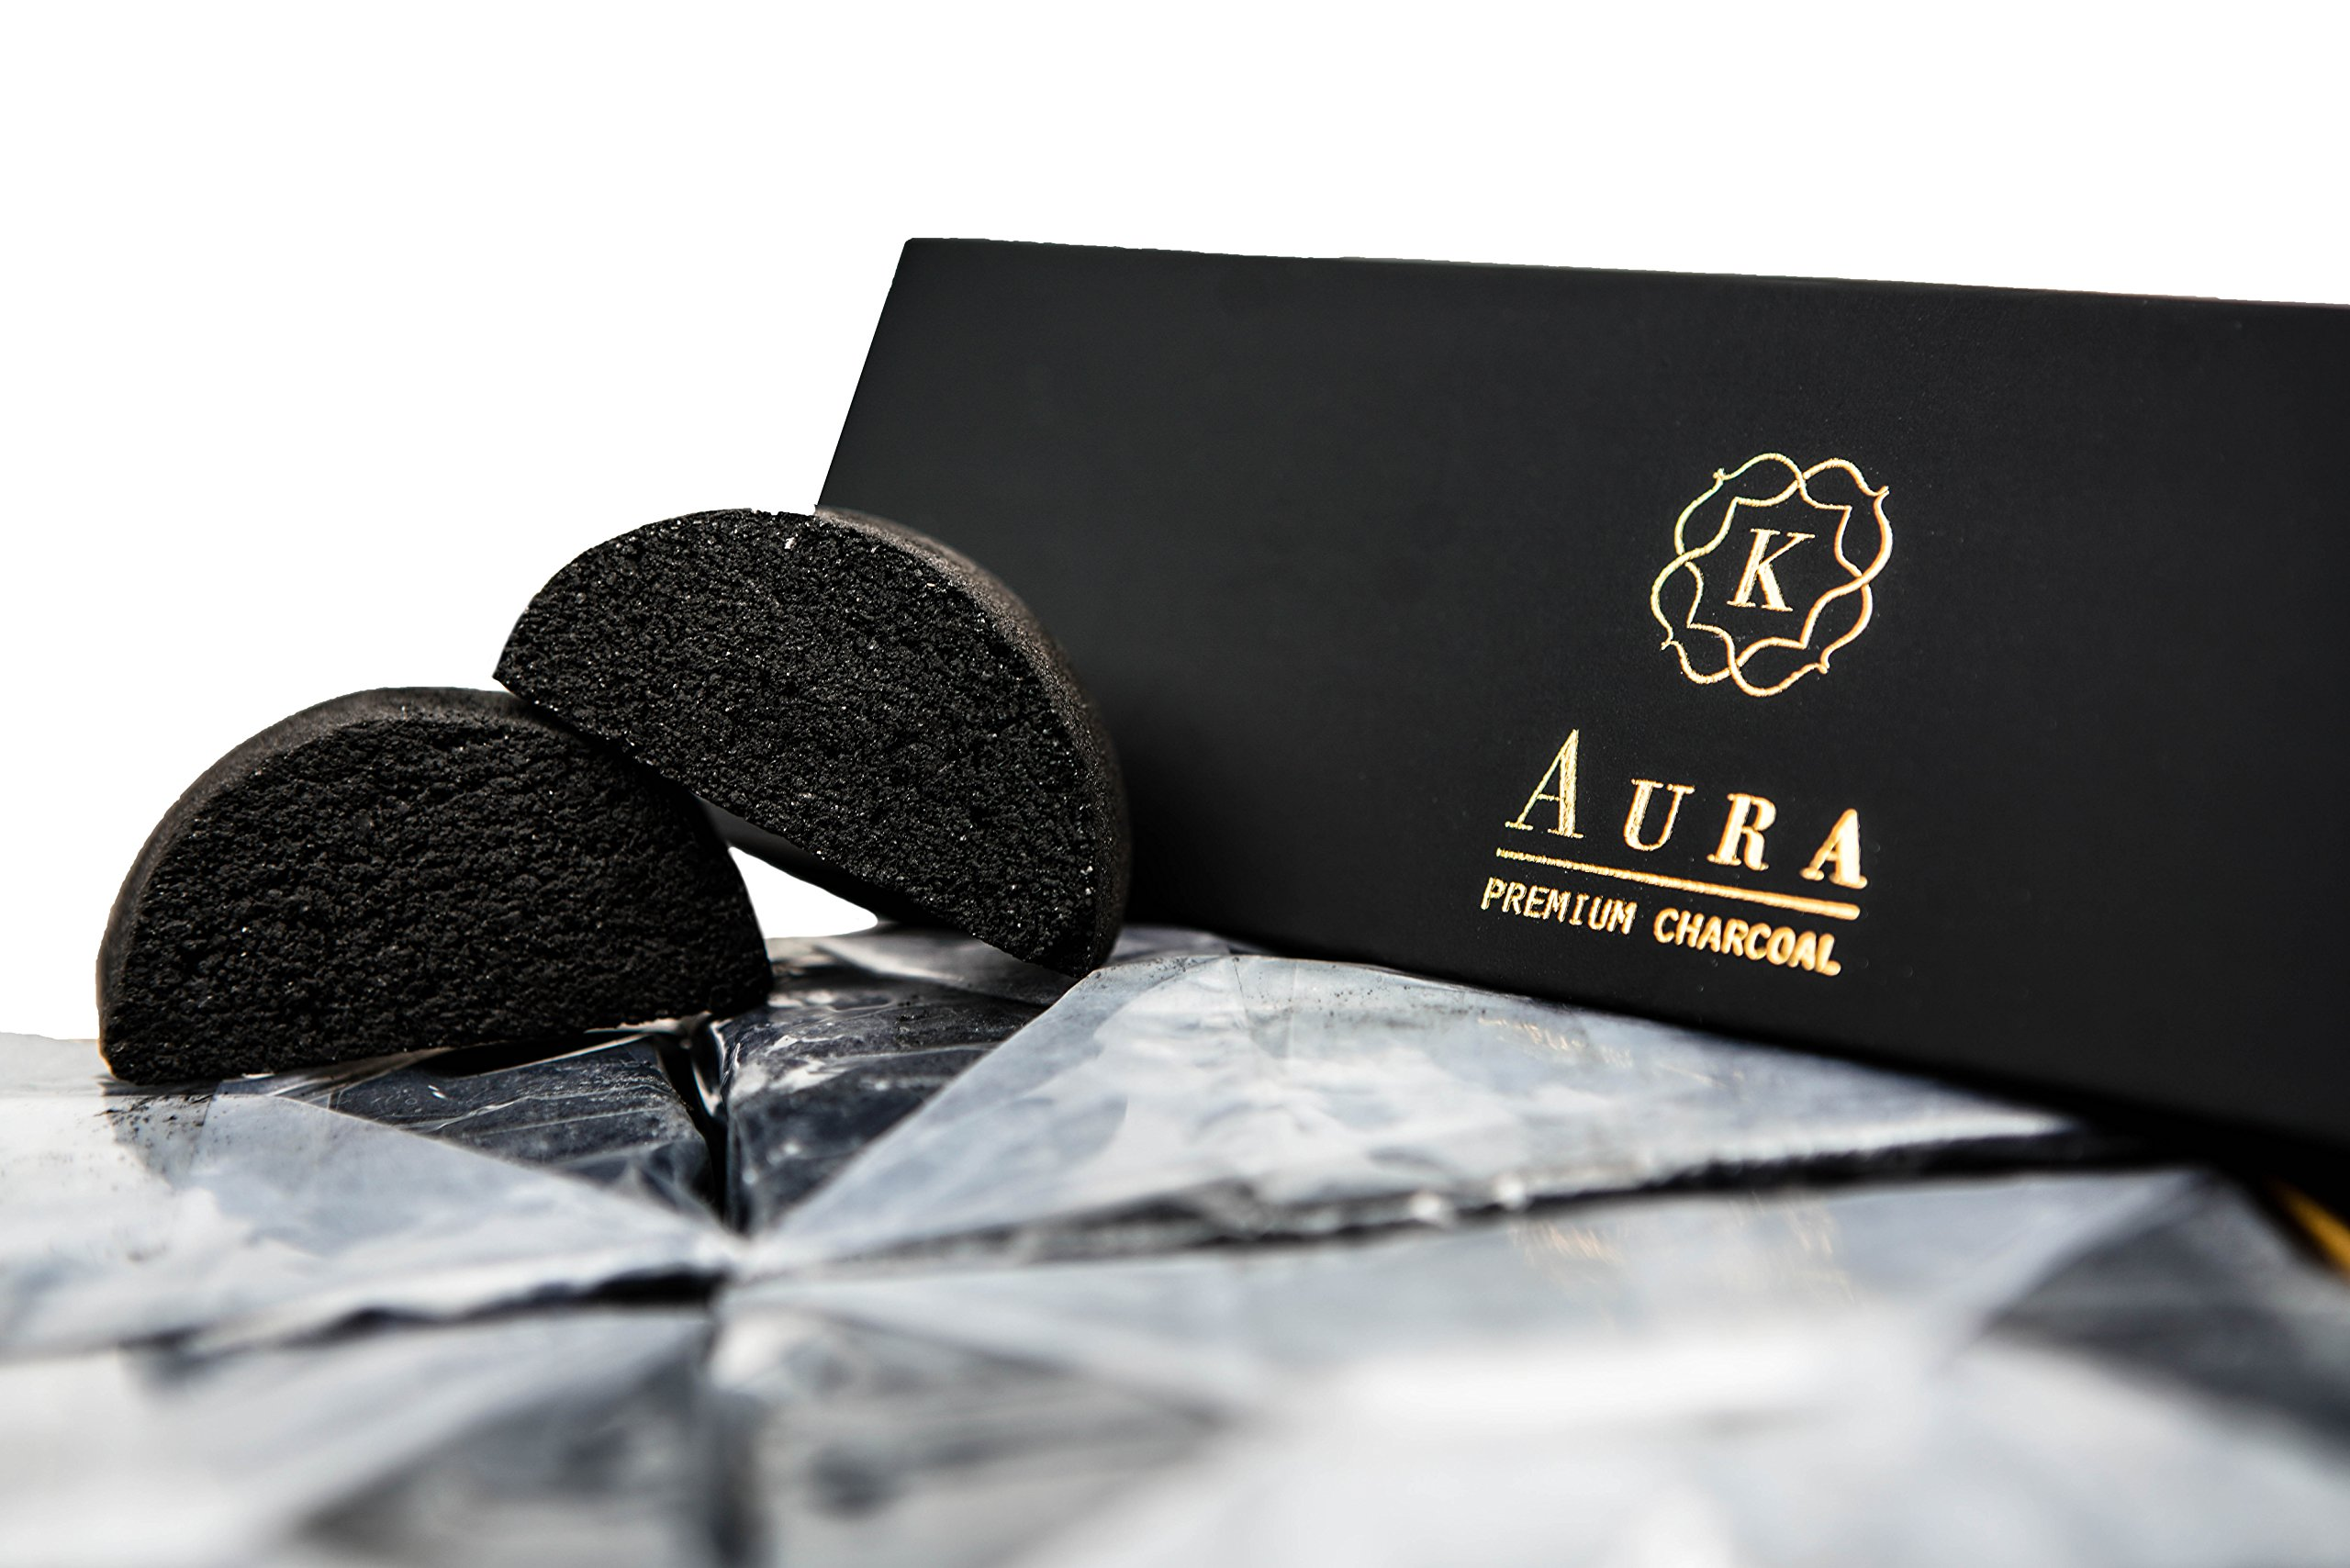 Kaloud Aura Premium Coconut Charcoal 96 Pieces For Clean And Smooth Hookah Sessions Fits Perfectly With Kaloud Lotus I+